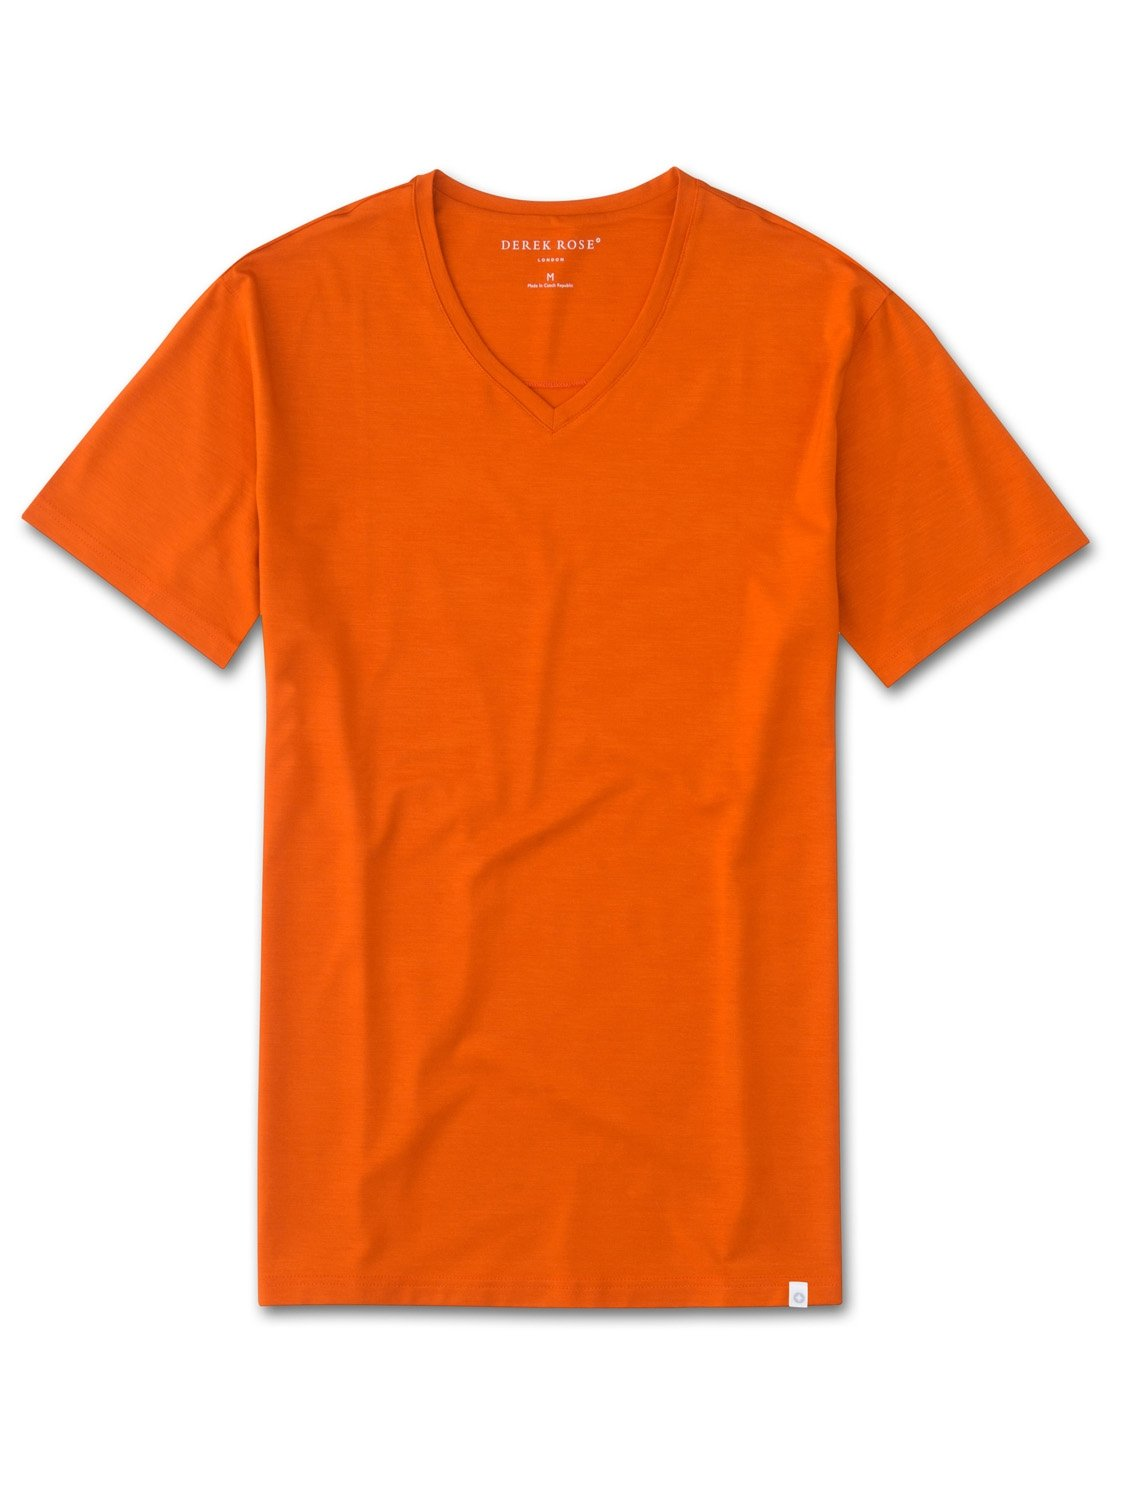 Men's Short Sleeve V-Neck T-Shirt Basel 4 Micro Modal Stretch Orange